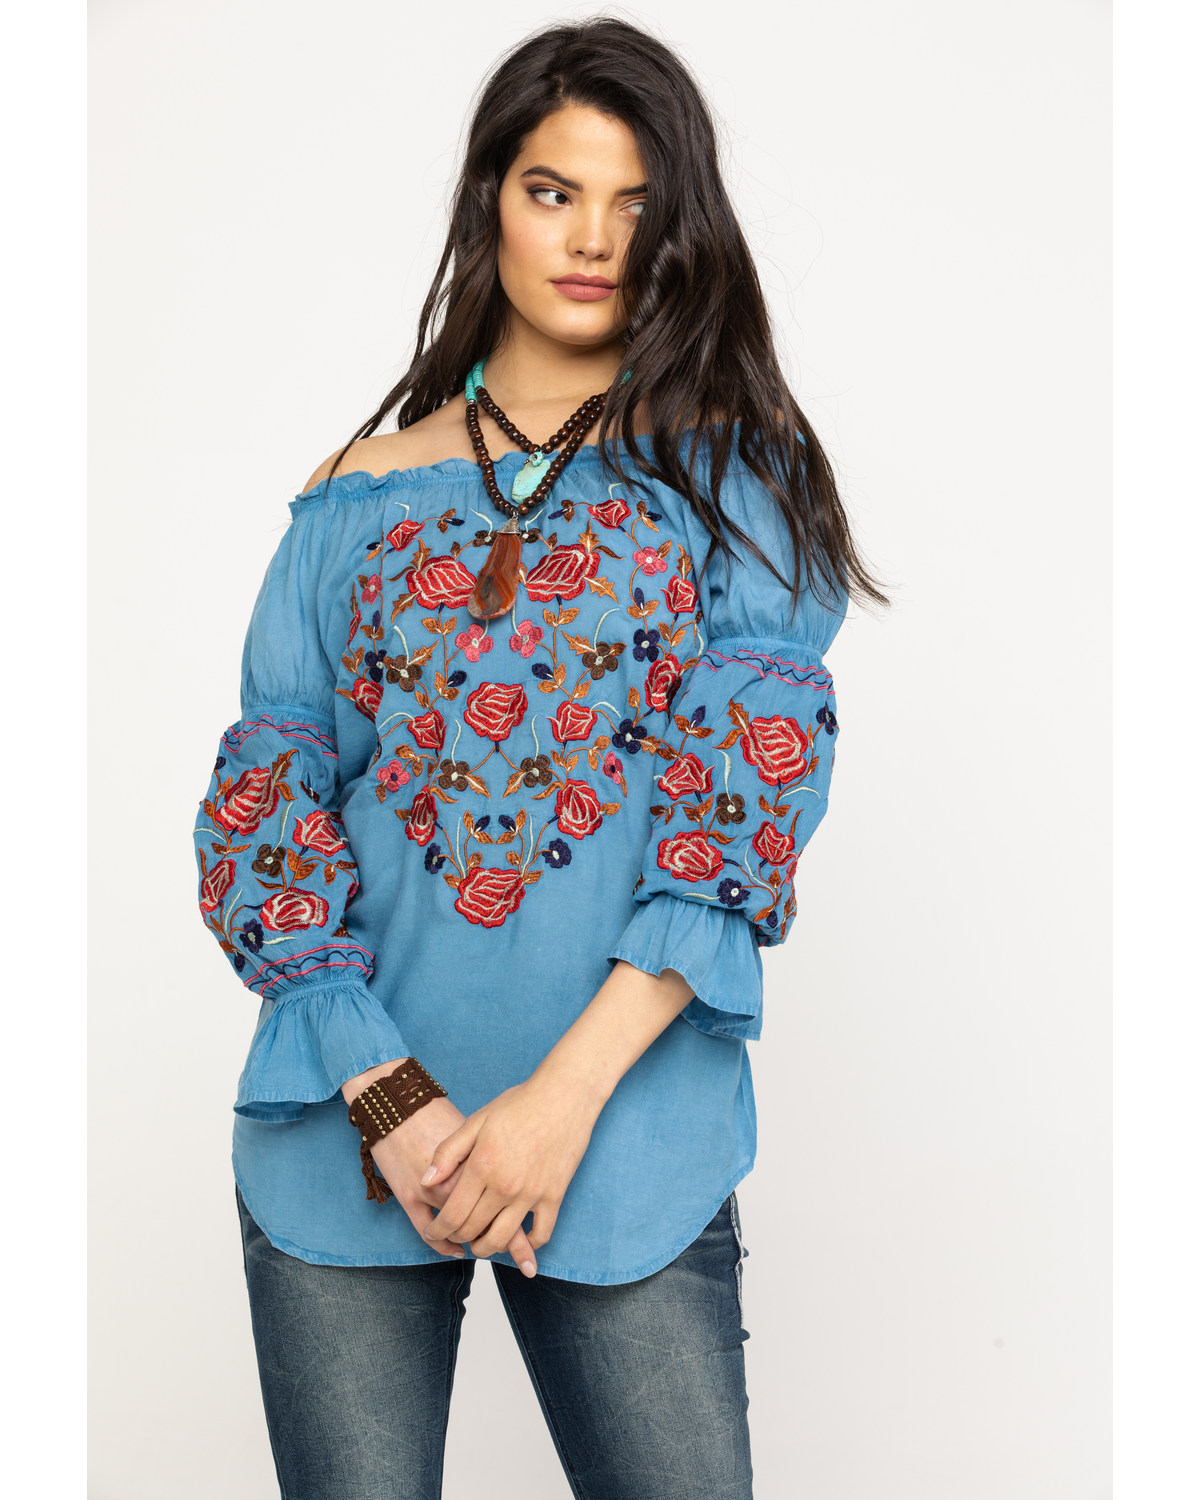 bea6167ae4e Honey Creek by Scully Women s Blue Avalanche Peasant Blouse